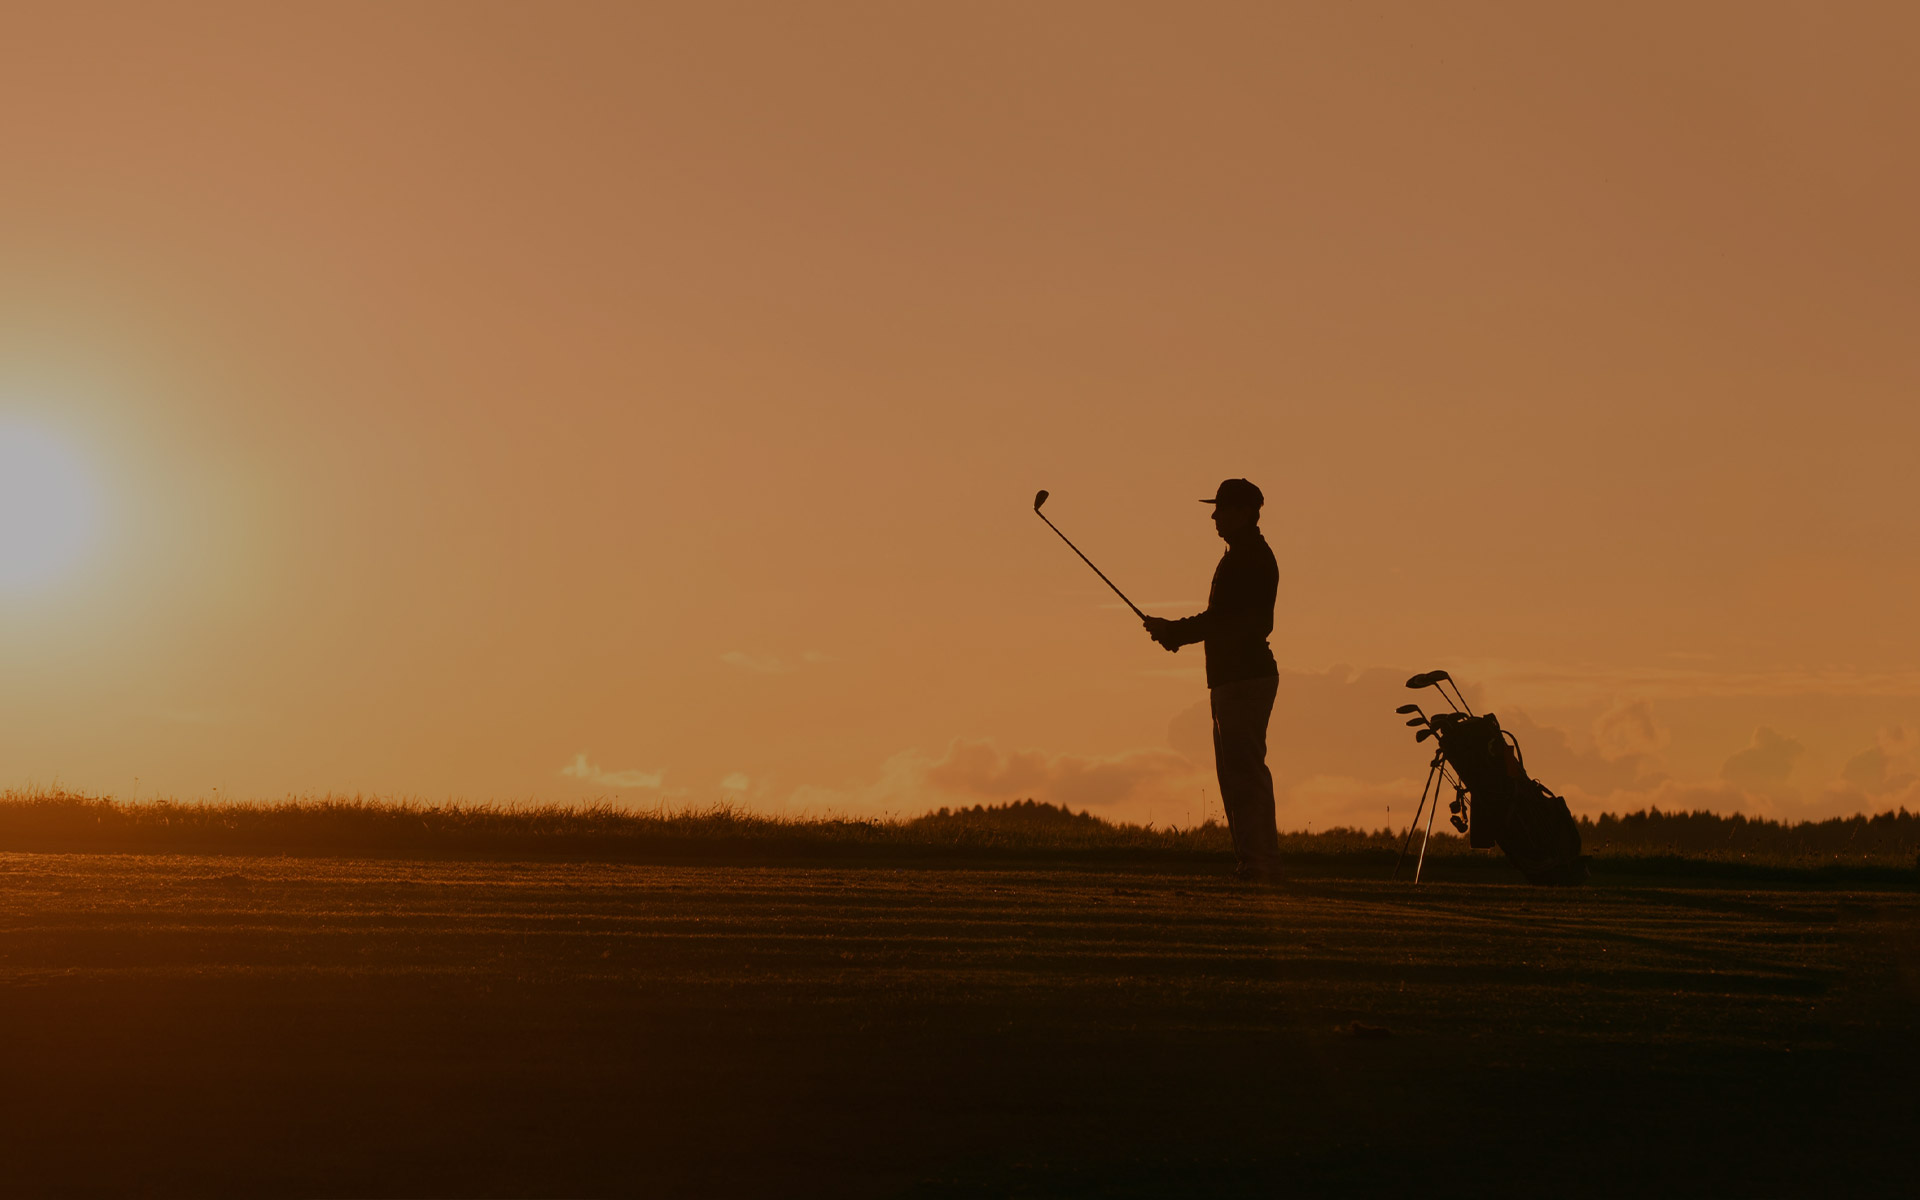 silhouette of a person playing golf